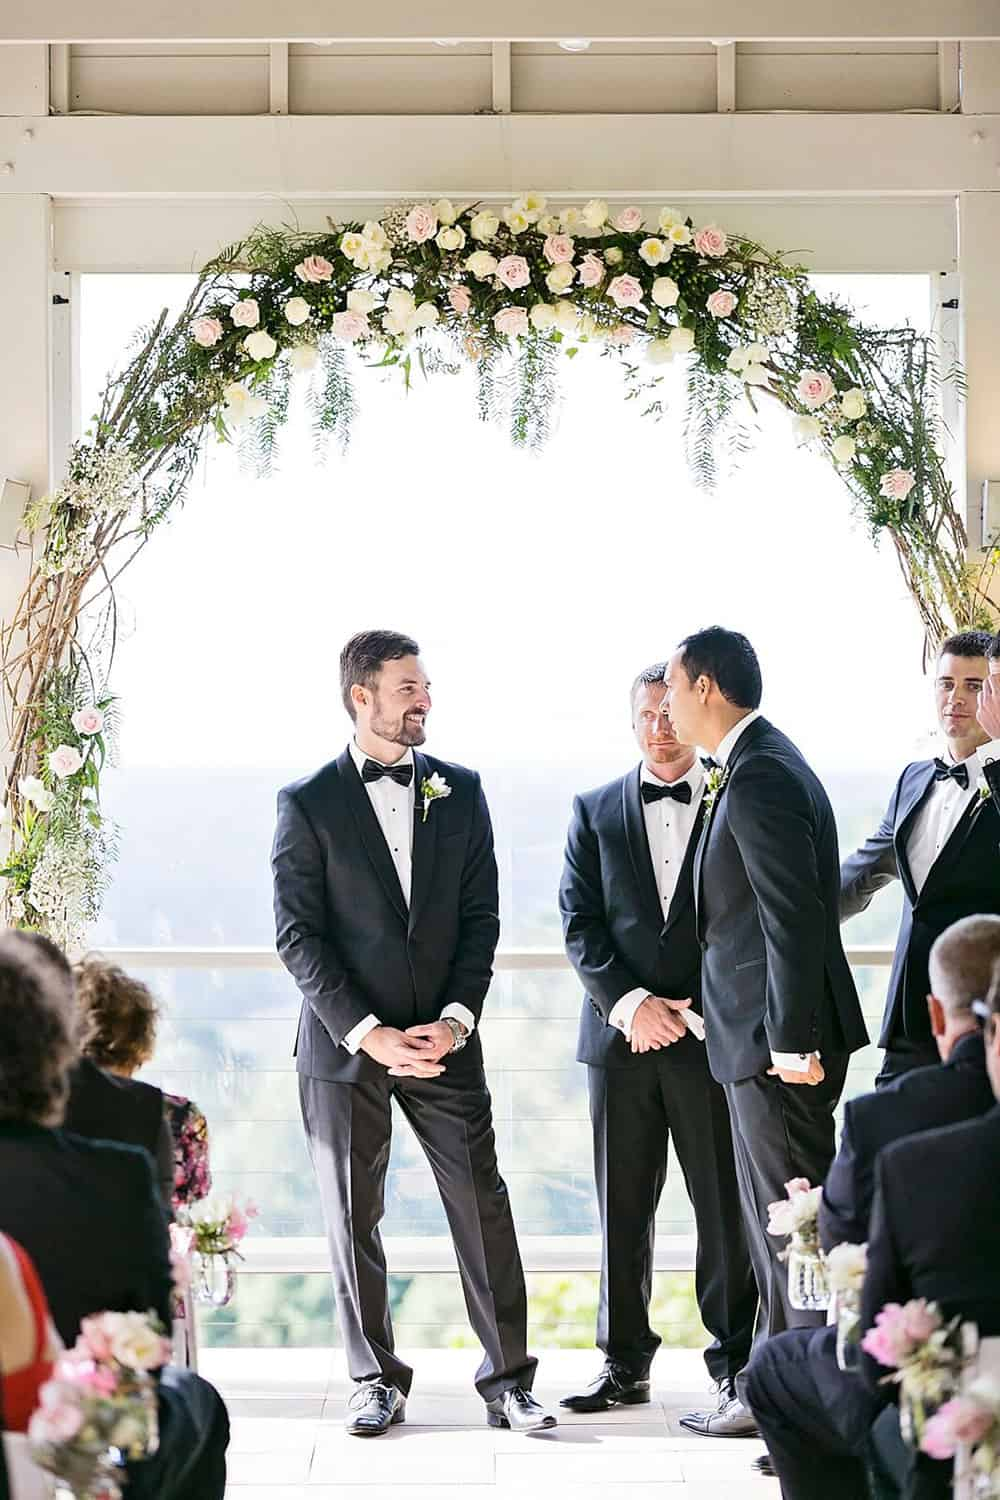 Grant waiting for his bride